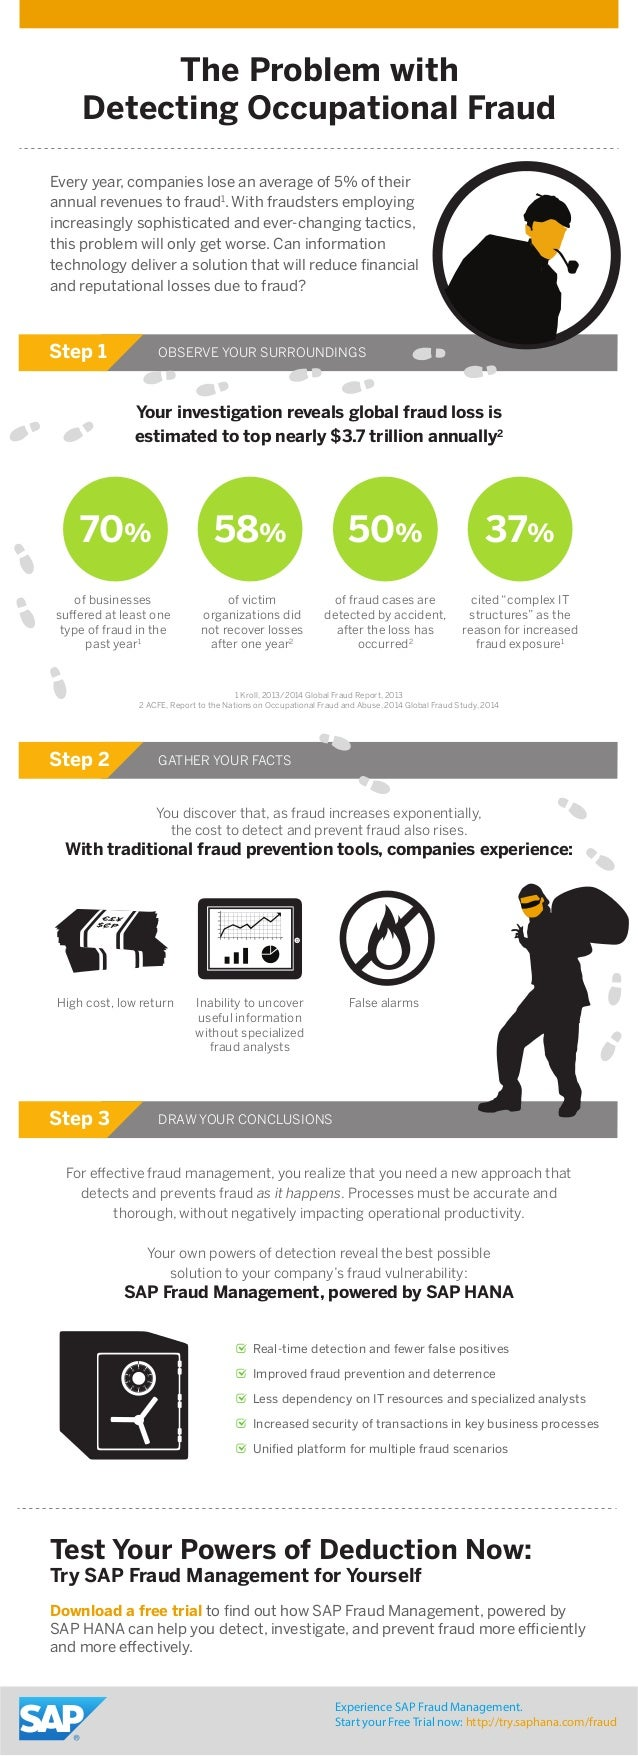 Detect Occupational Fraud with SAP Fraud Management